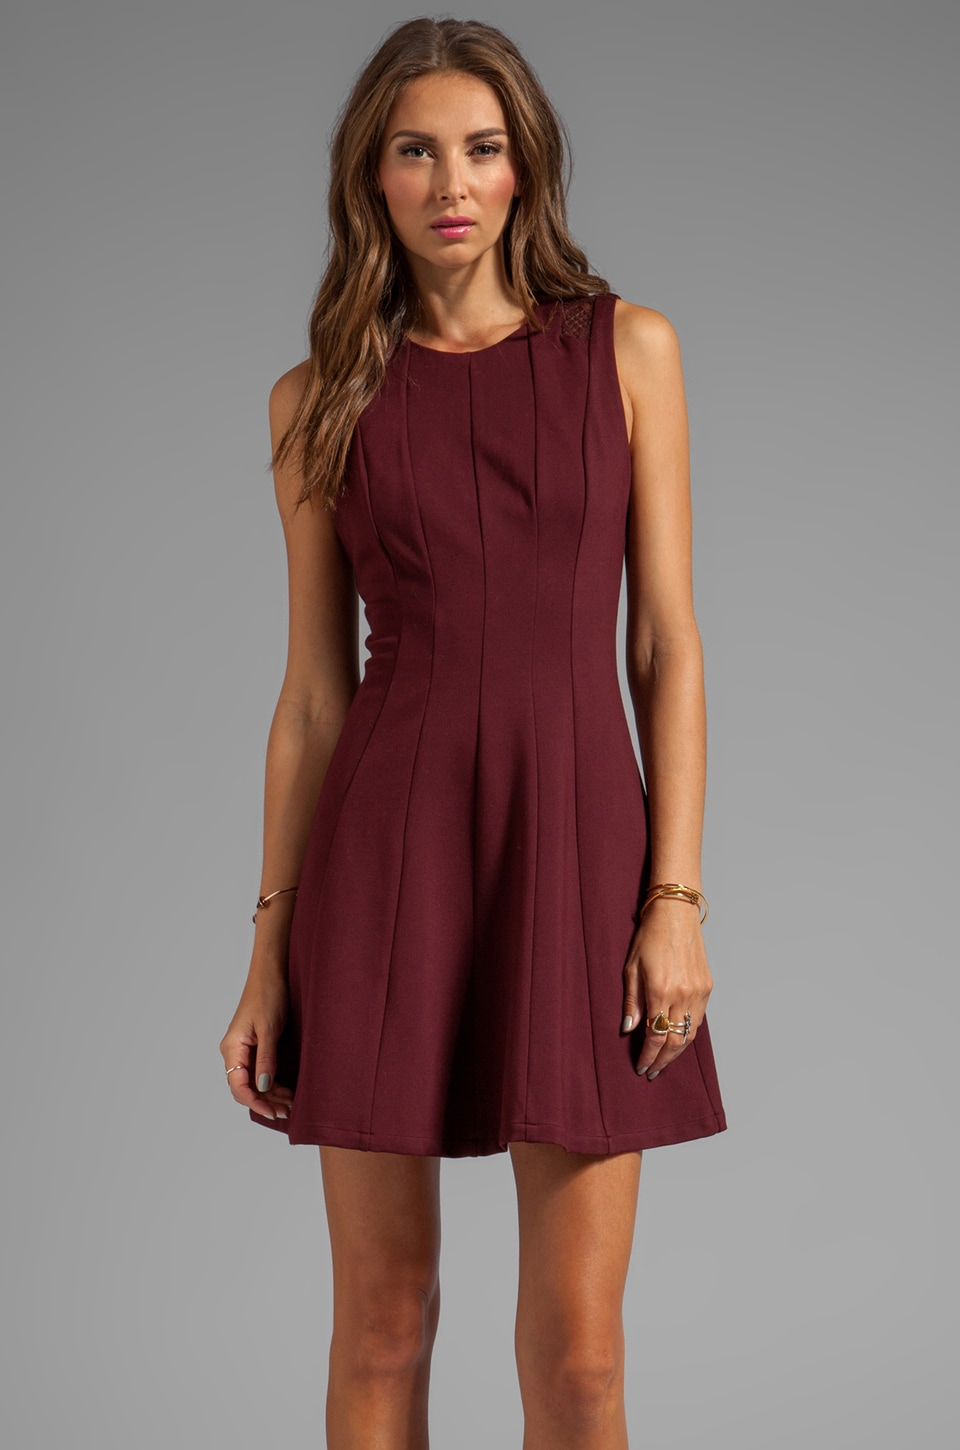 HEARTLOOM Kelsie Dress in Merlot